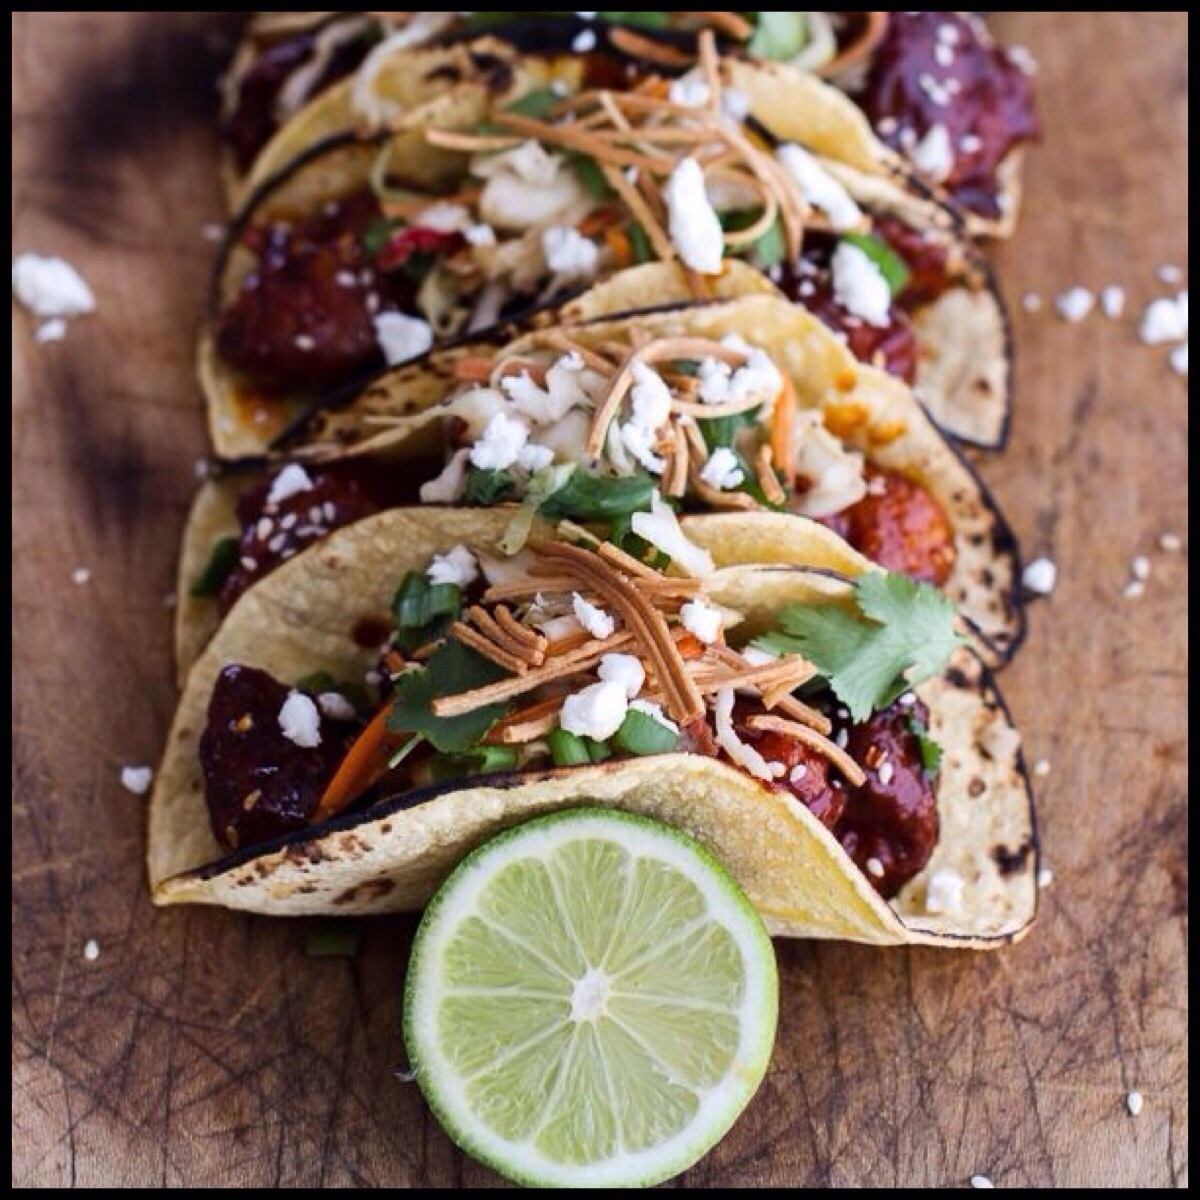 Korean fried chicken tacos with sweet slaw crunchy noodles queso korean fried chicken tacos with sweet slaw crunchy noodles queso fresco forumfinder Choice Image